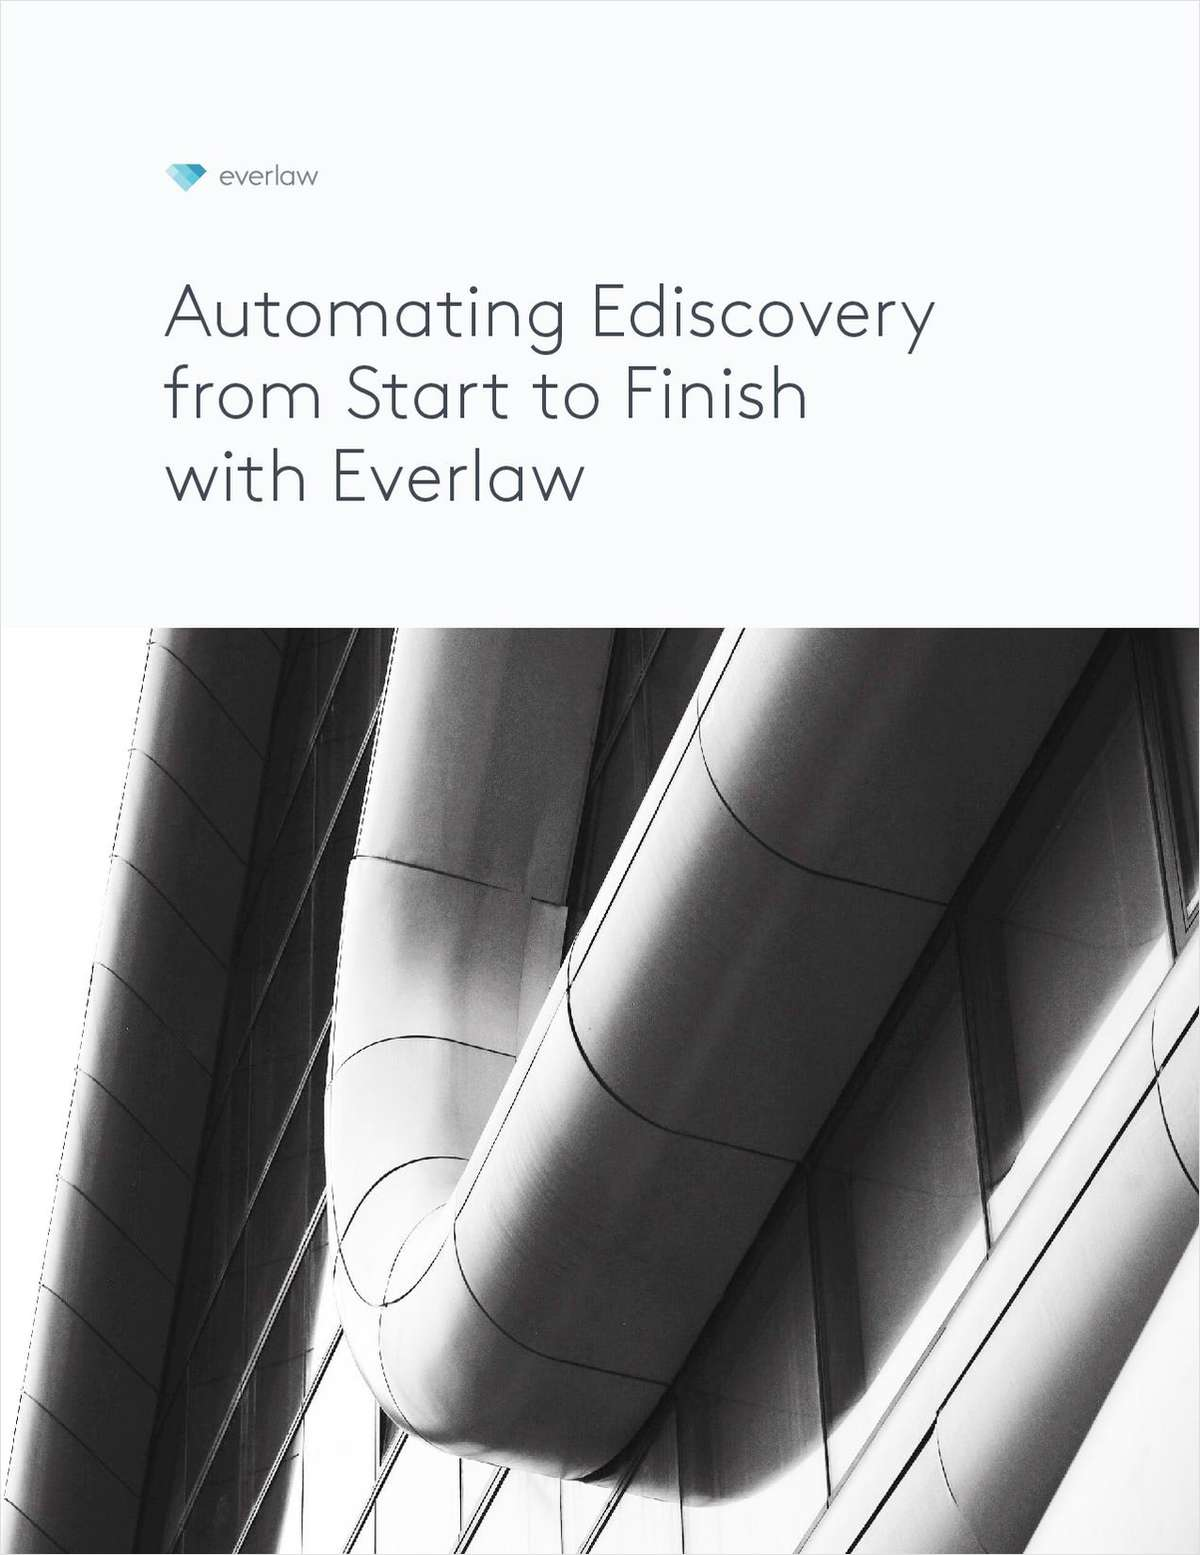 Discover how your organization can improve predictability and efficiency by automating and streamlining the ediscovery process, from data upload and processing to search, review, and production.